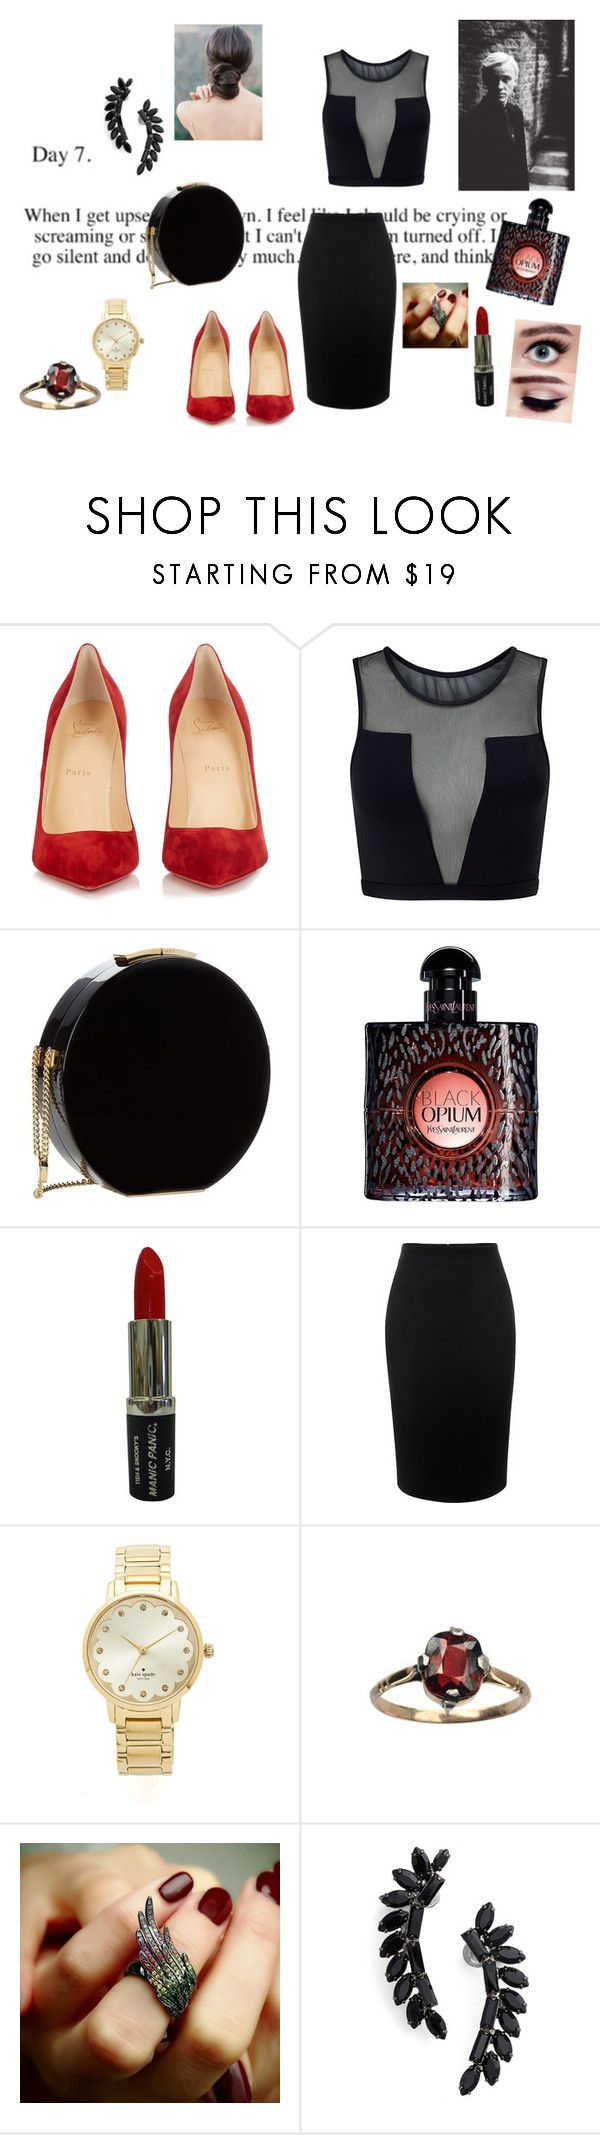 """this is not me.."" by rosesophiawalker ❤ liked on Polyvore featuring Christian Louboutin, Varley, Elie Saab, Yves Saint Laurent, Manic Panic NYC, Alexander McQueen, Kate Spade, AS29 and Cristabelle"